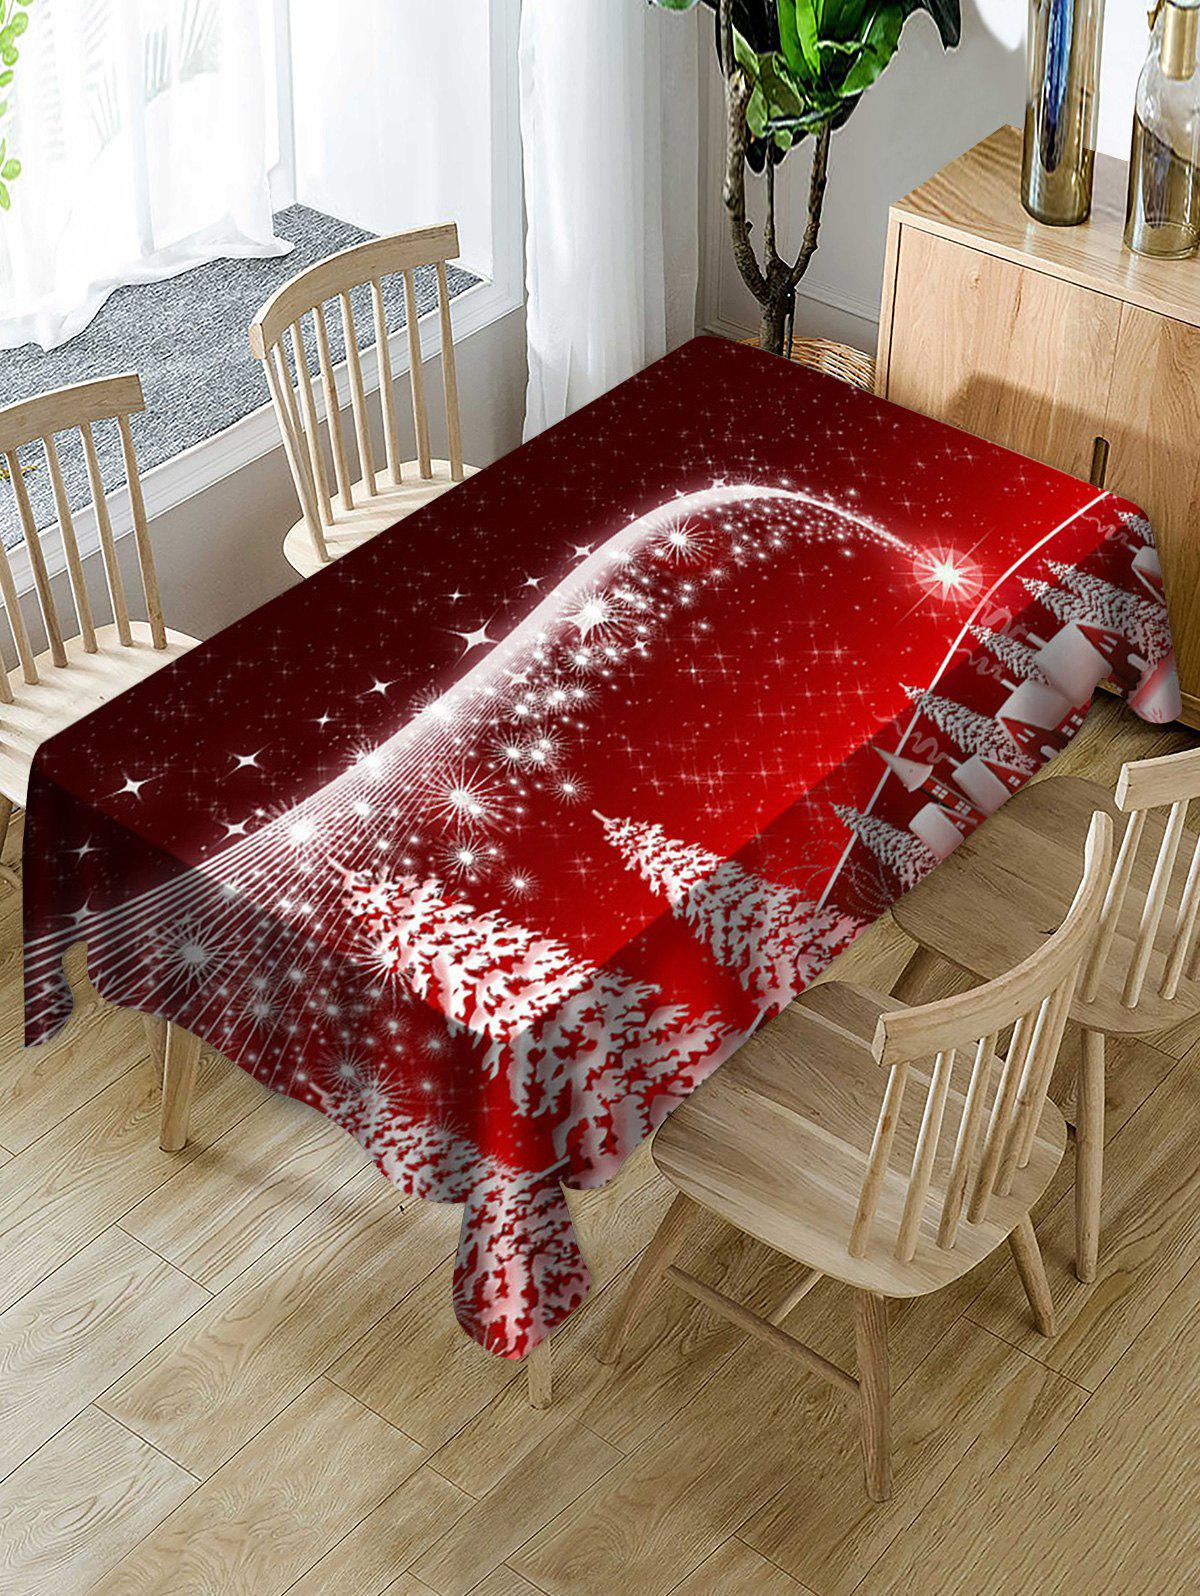 Online Christmas Tree Village Print Fabric Waterproof Tablecloth